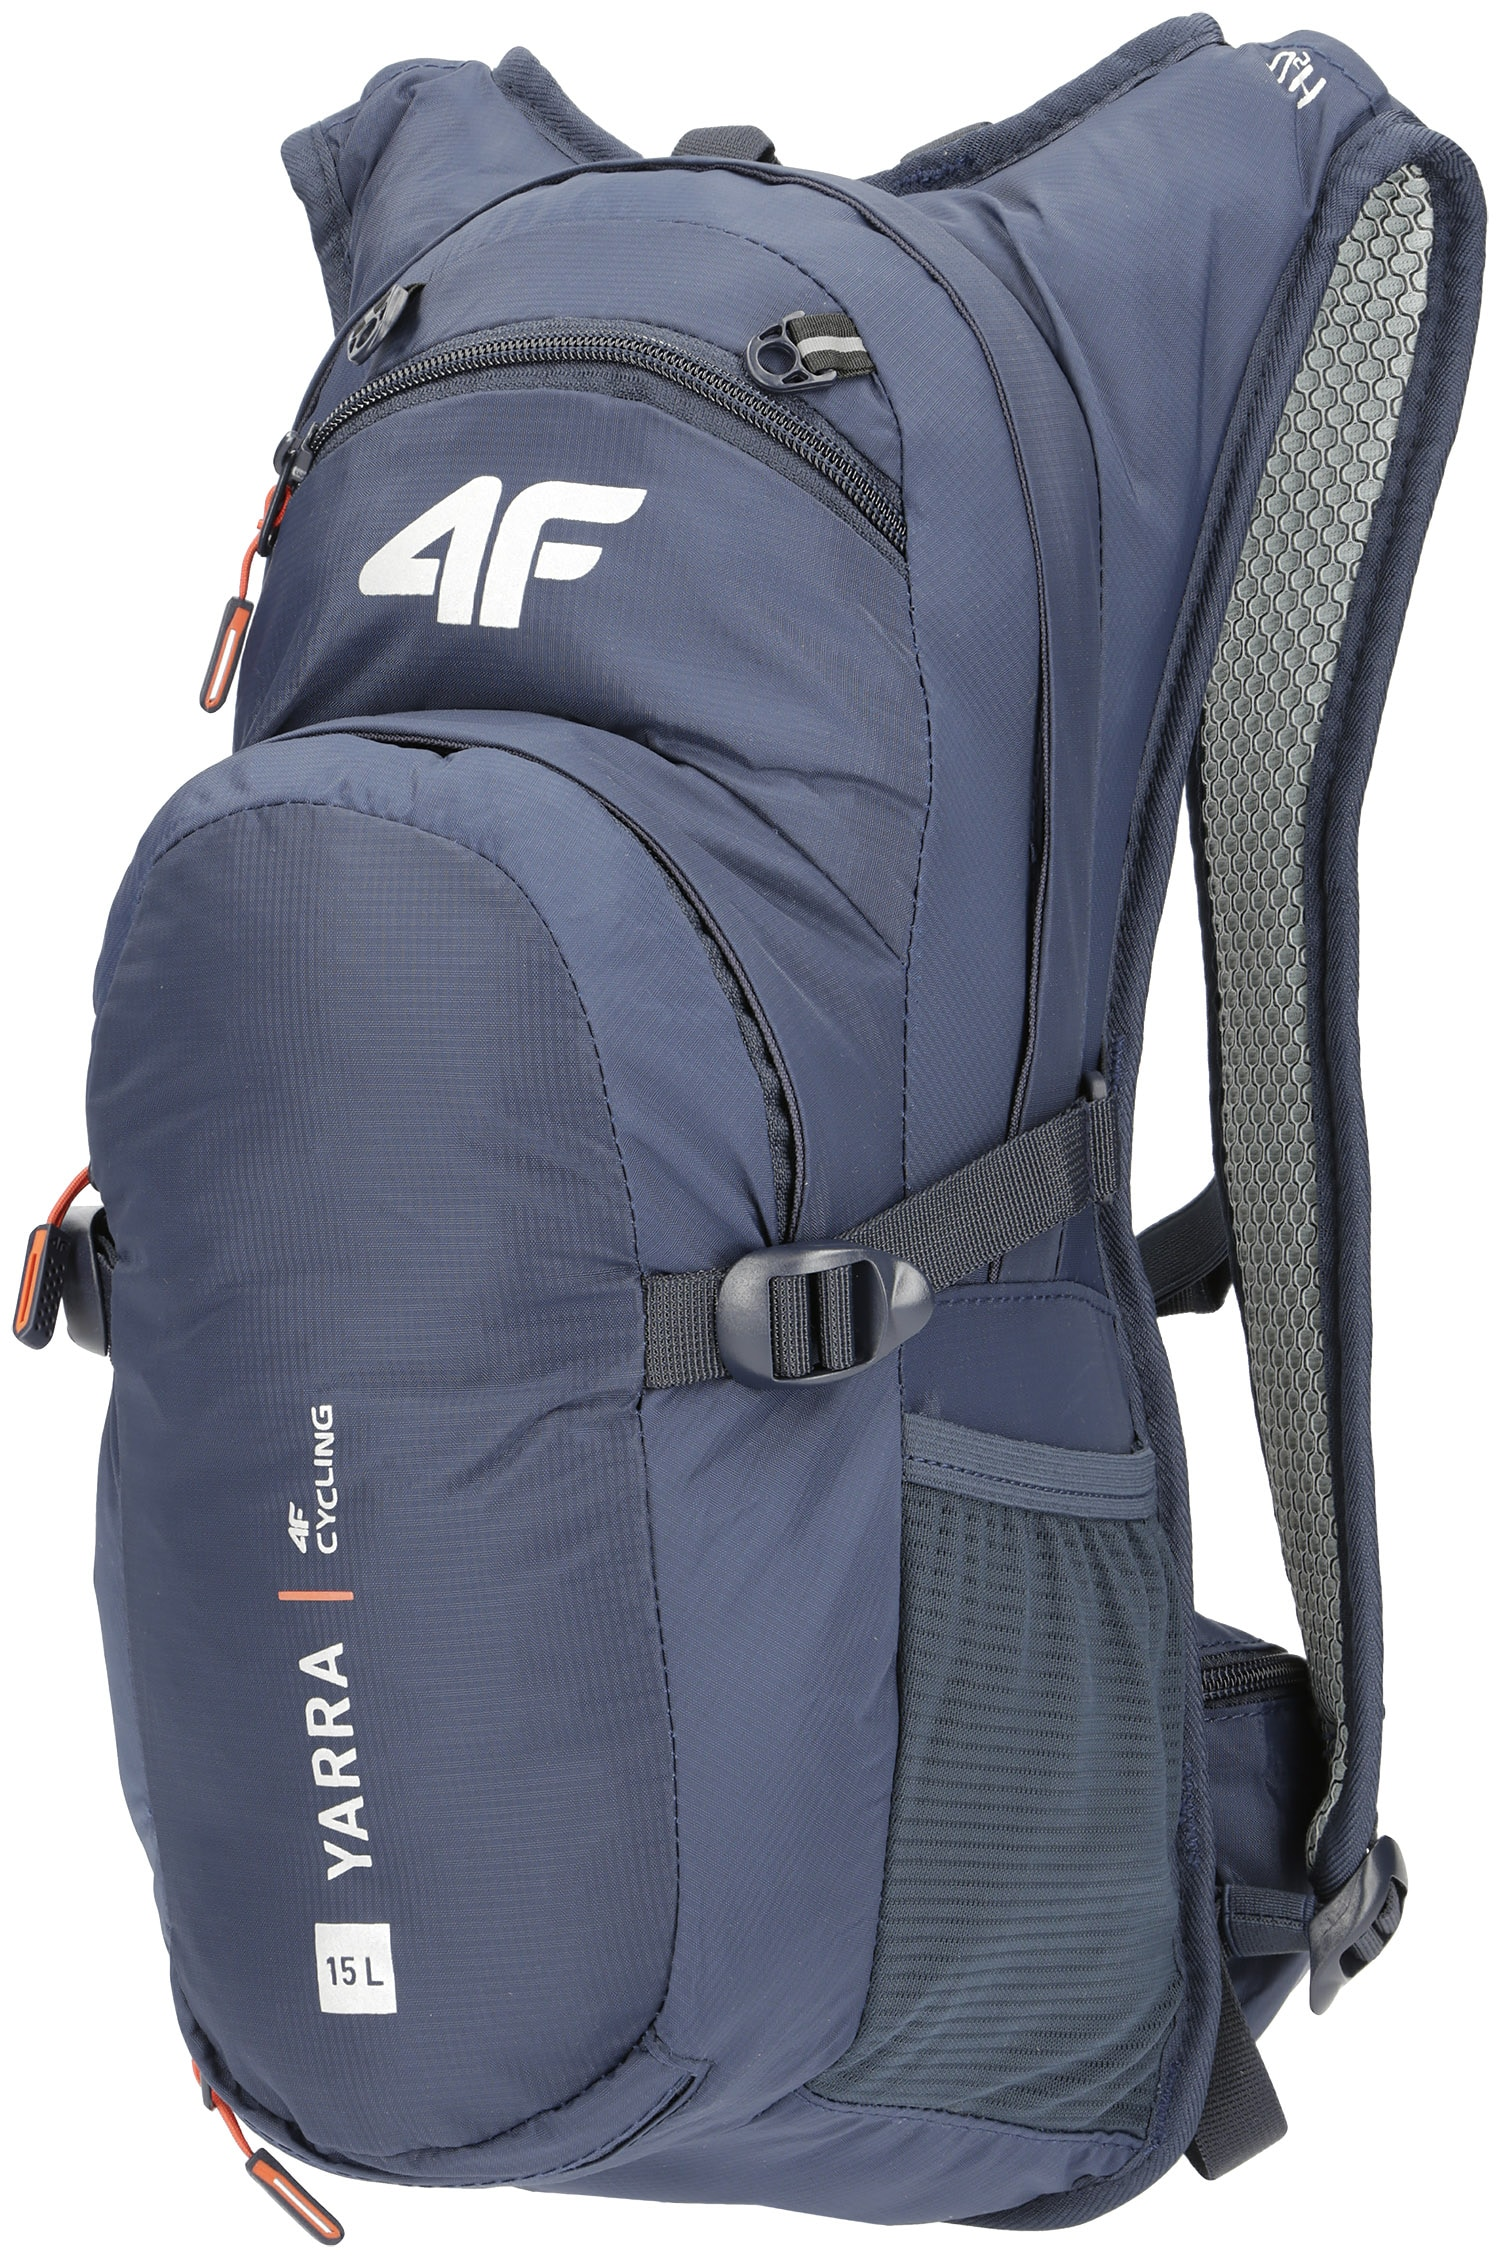 f203ee108 Cycling backpack PCF108 - navy blue